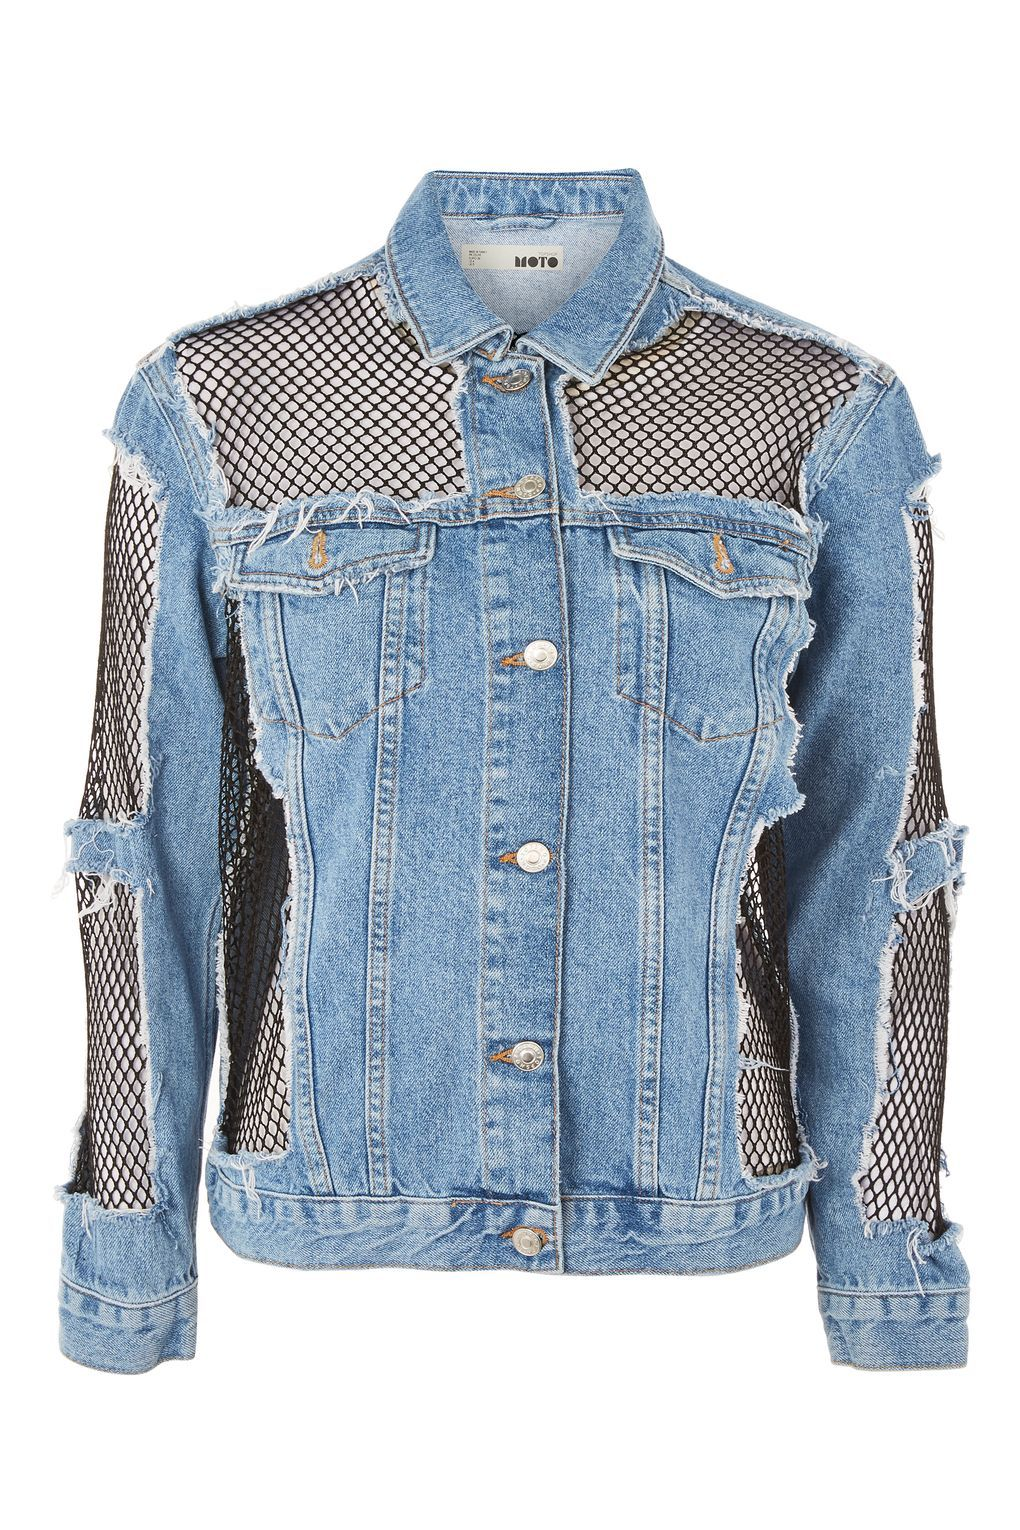 c94aa16c7d Carousel Image 0 Petite Denim Jacket, Oversized Denim Jacket, Blue Jean  Jacket, Denim